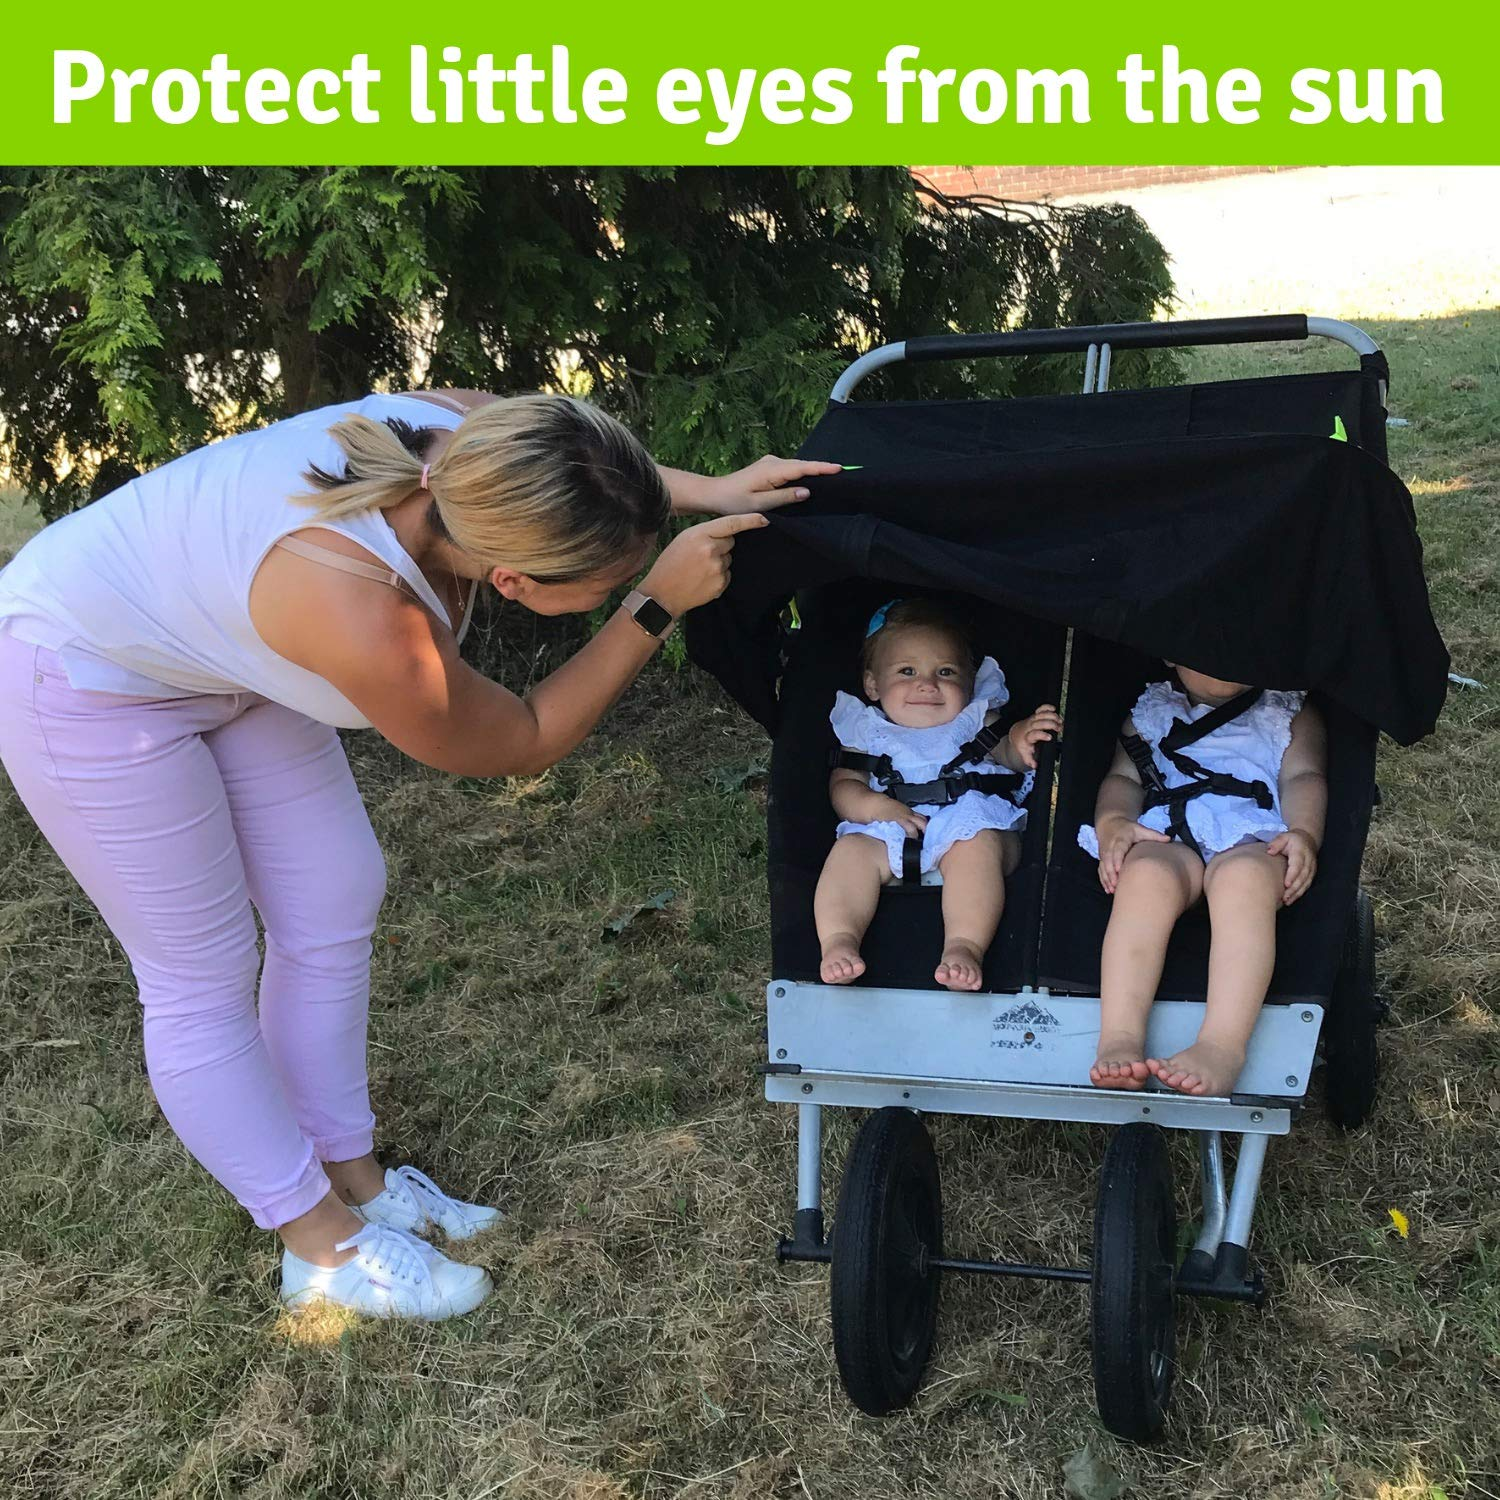 Double Stroller Cover & Sun Shade | Award-Winning Blackout Blind and Baby Sleep Aid | Stops 99% of The Sun's Rays | Lets Your Babies nap Safely Anywhere | Universal Fit | SnoozeShade Twin by SnoozeShade (Image #2)